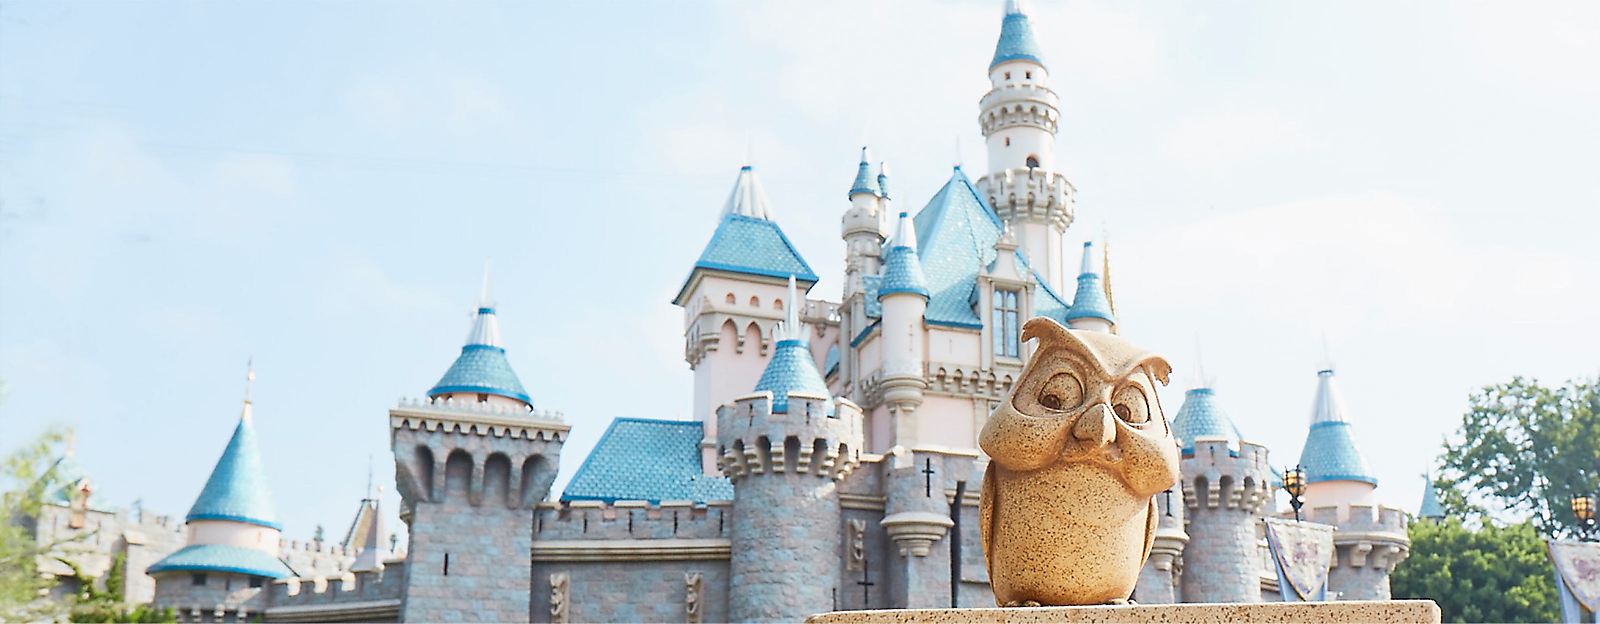 Disneyland Find authentic merchandise inspired by the Happiest Place on Earth